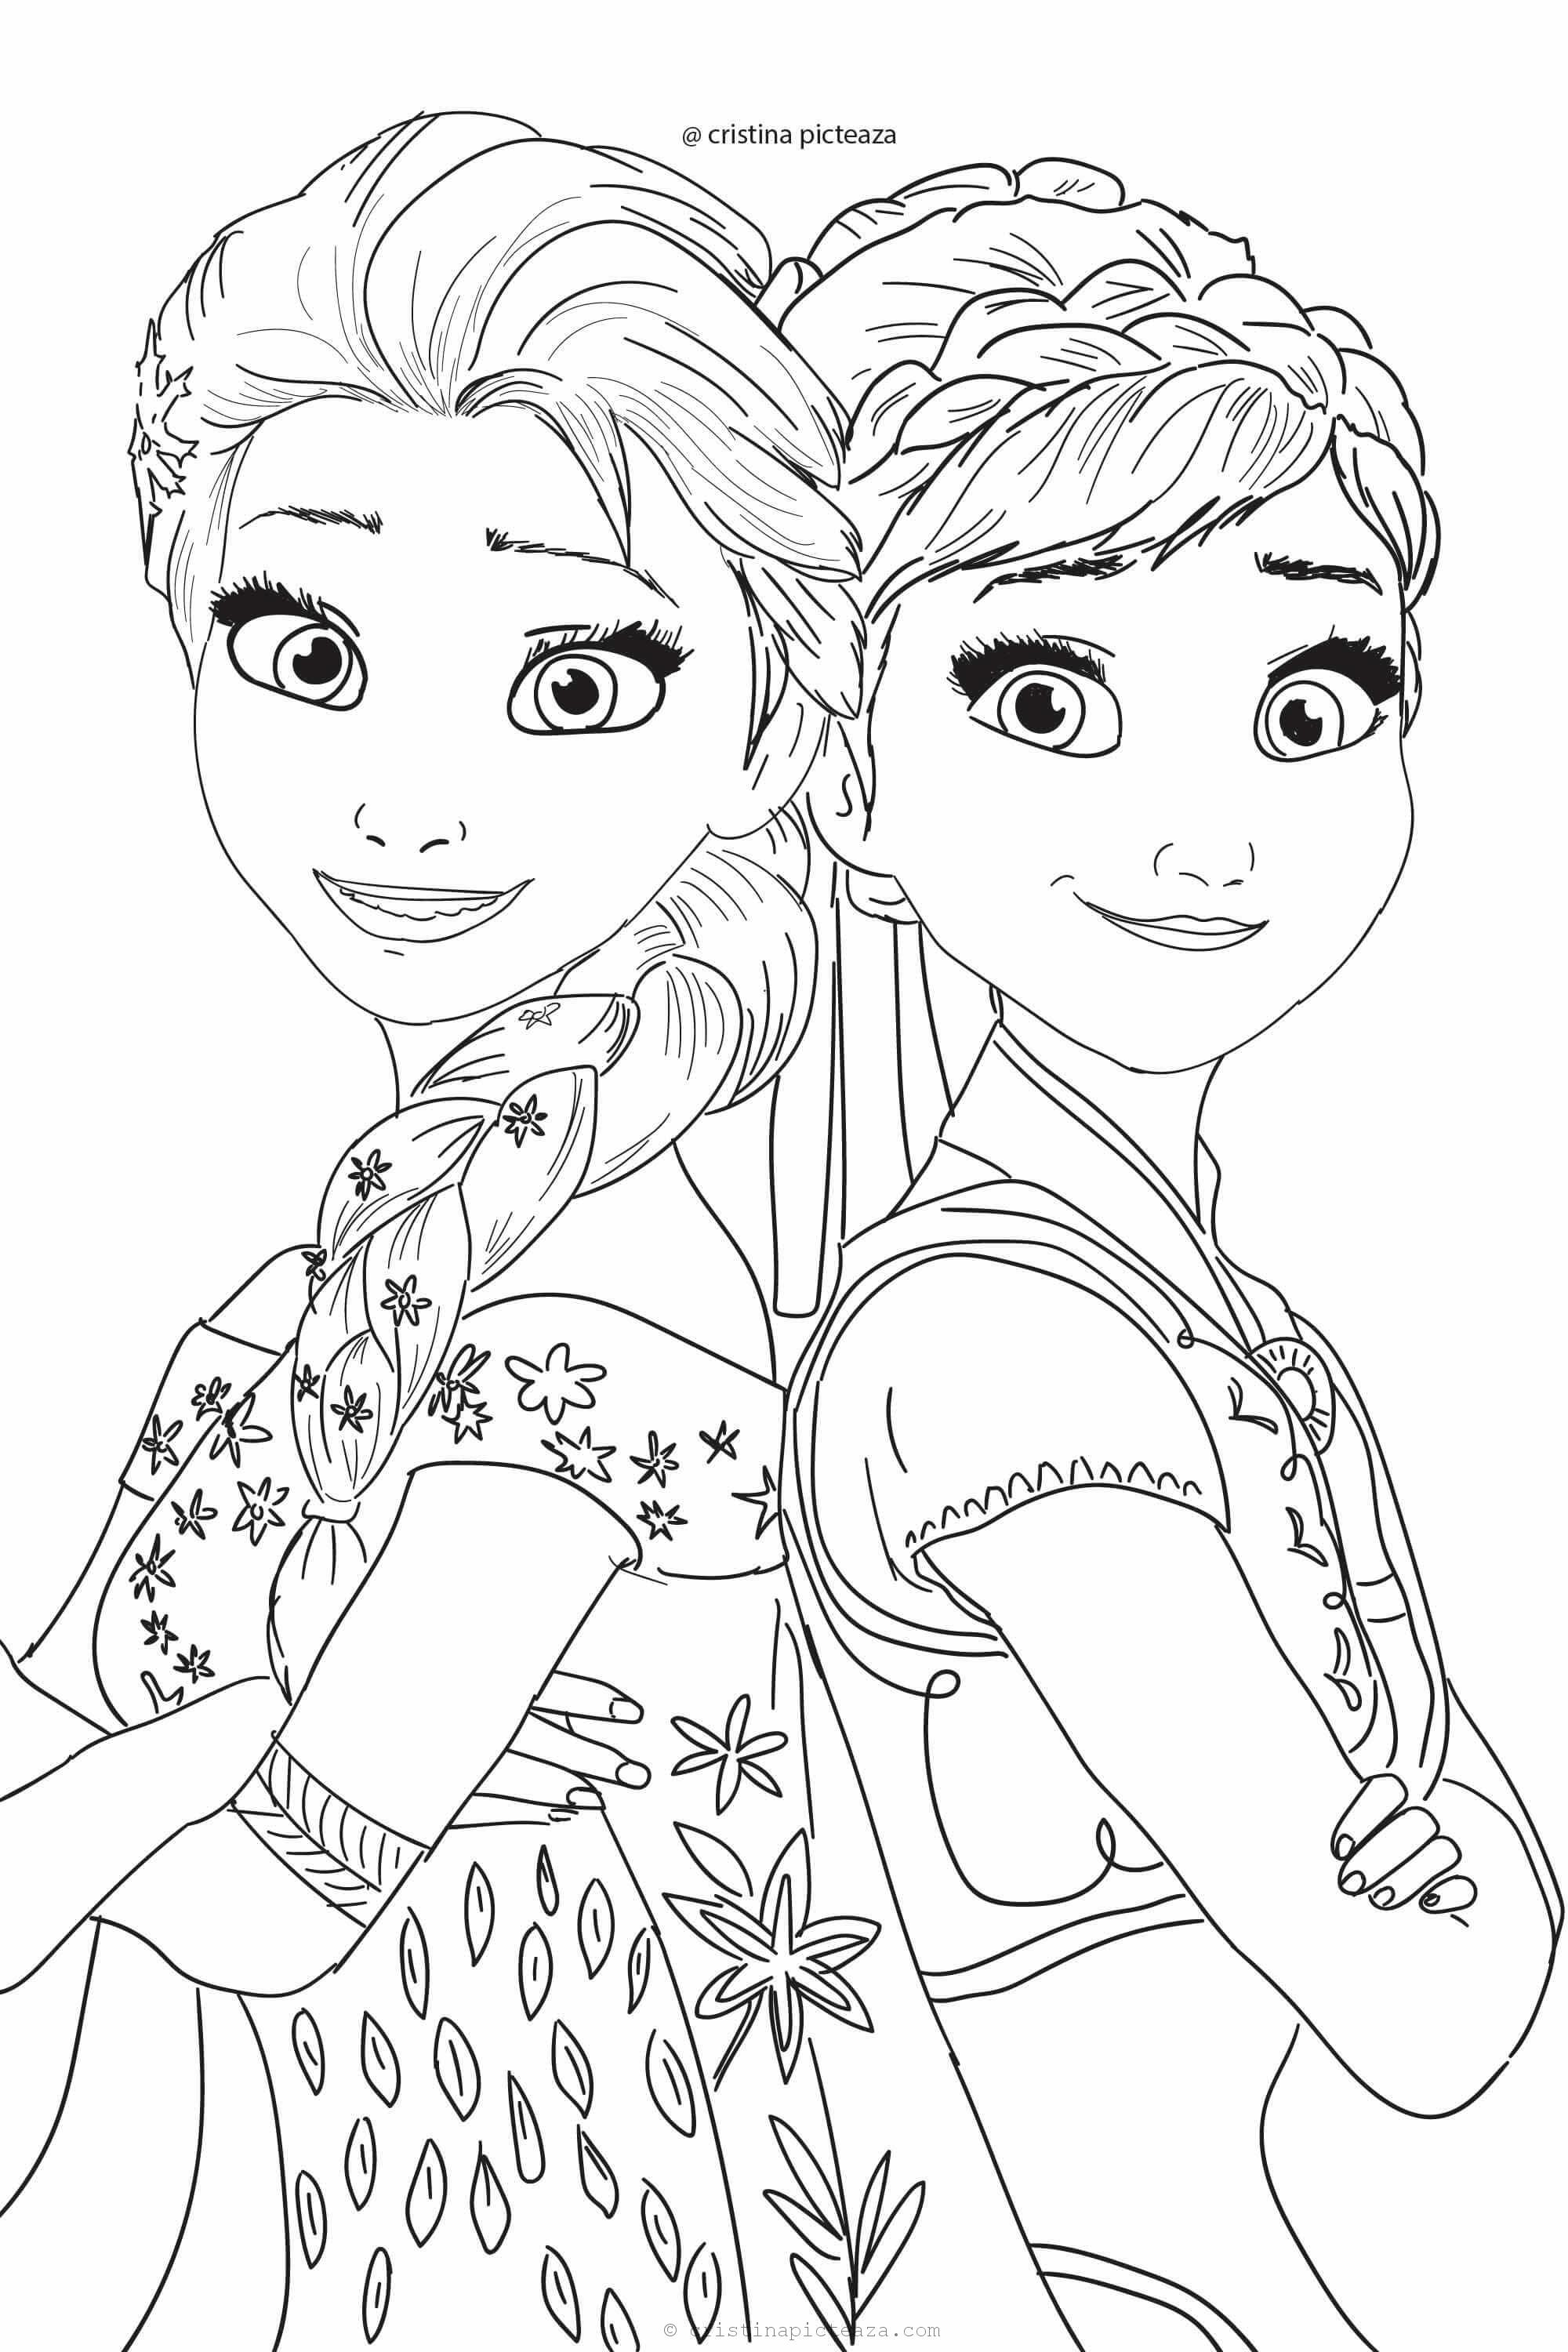 coloring pictures of frozen characters frozen 2 coloring pages elsa and anna coloring characters of coloring pictures frozen